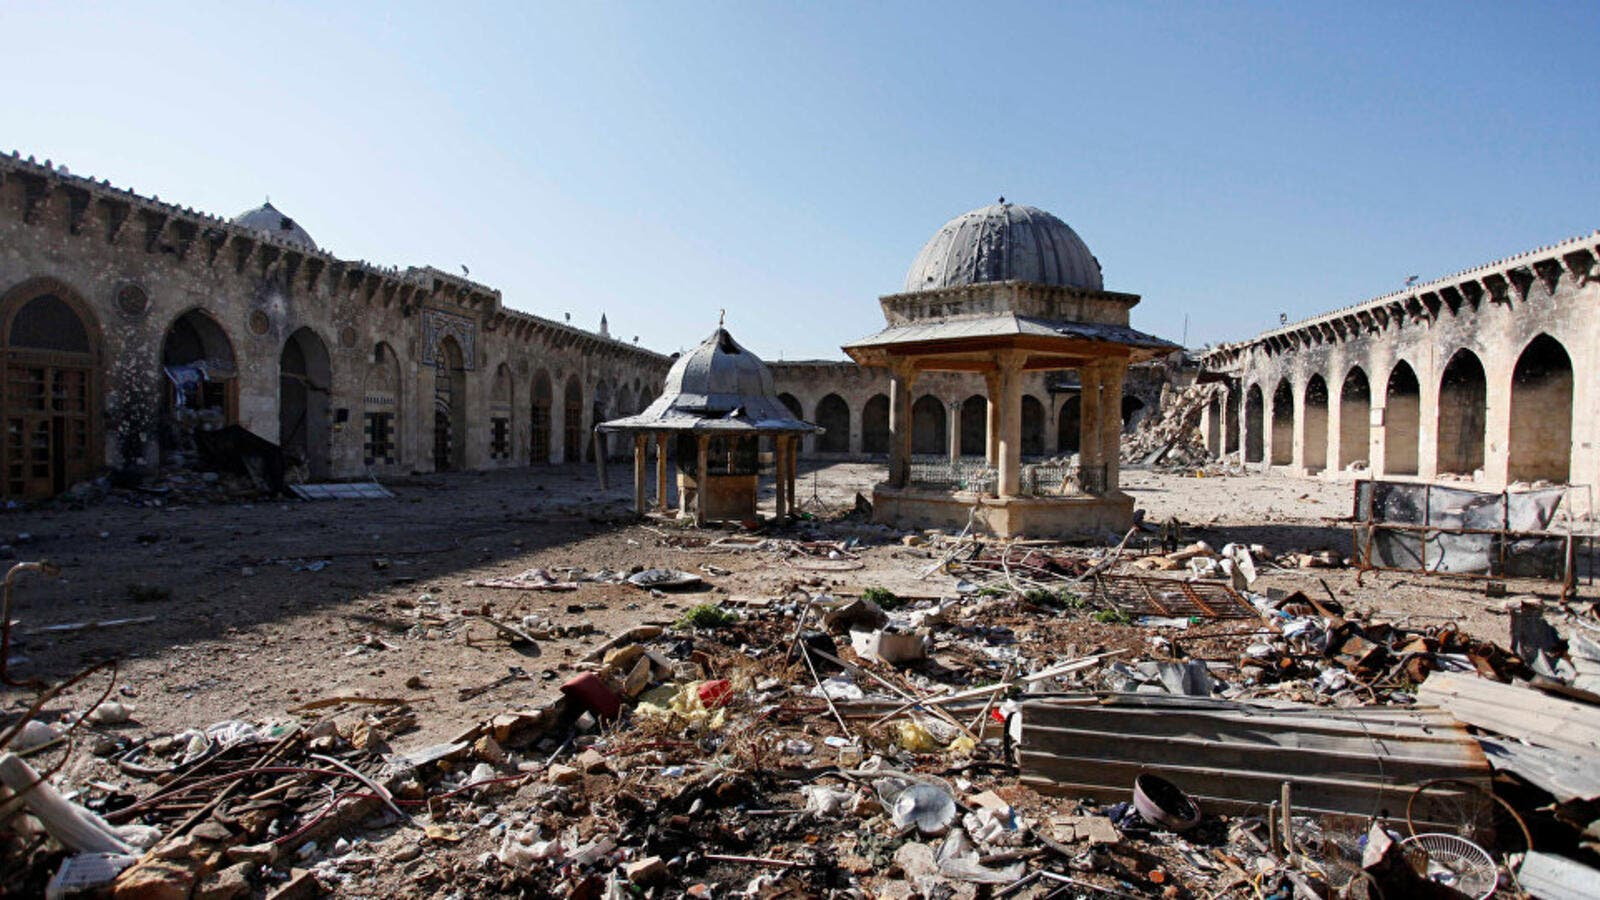 The Umayyad mosque of Old Aleppo in ruins in 2013. (AFP)